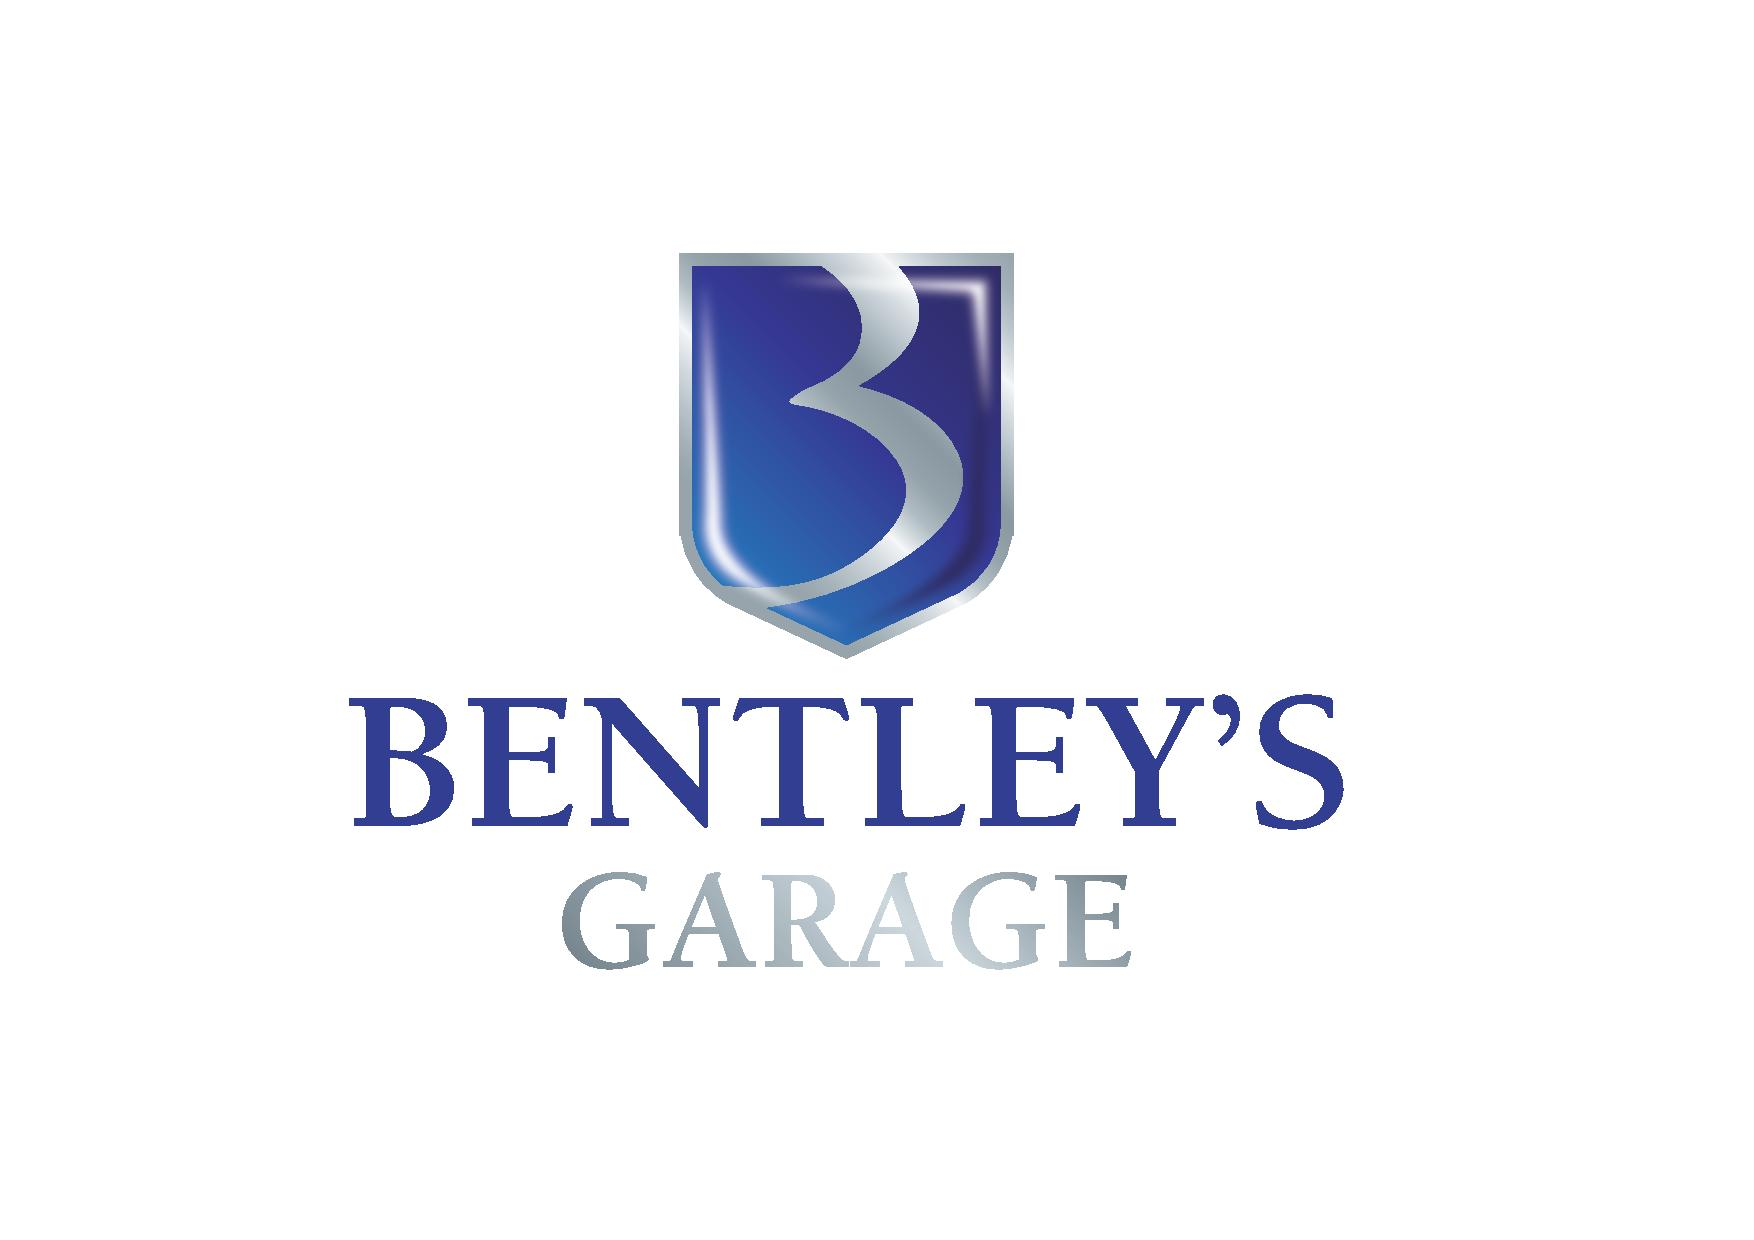 Bentley's Garage (Devon) Ltd